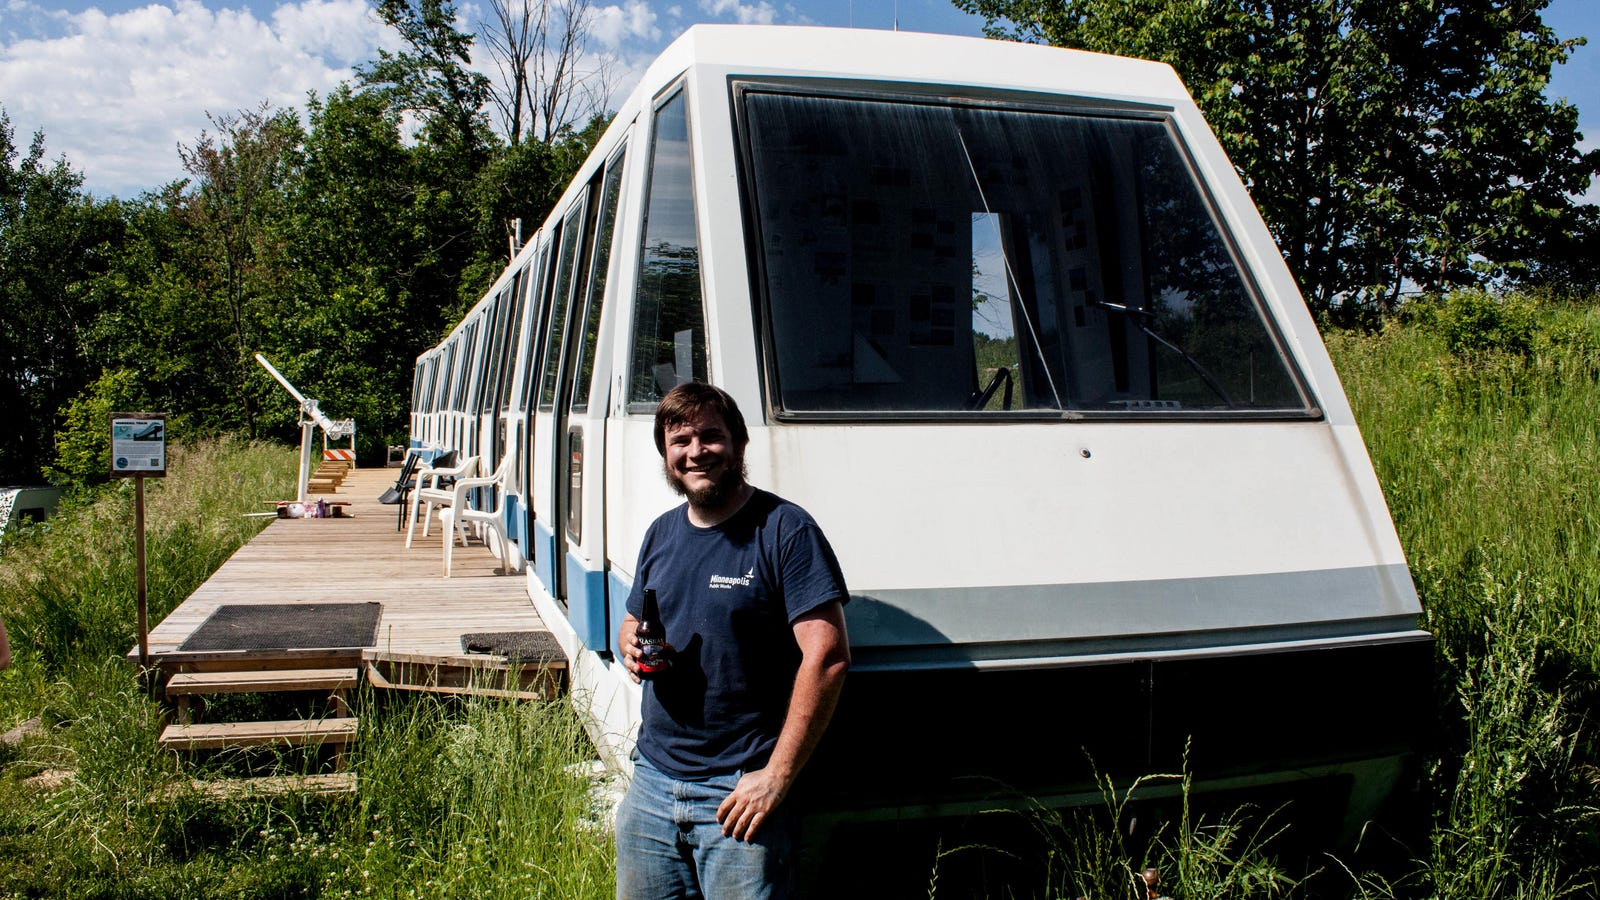 Meet the Guy Who Bought a Monorail For $1,000